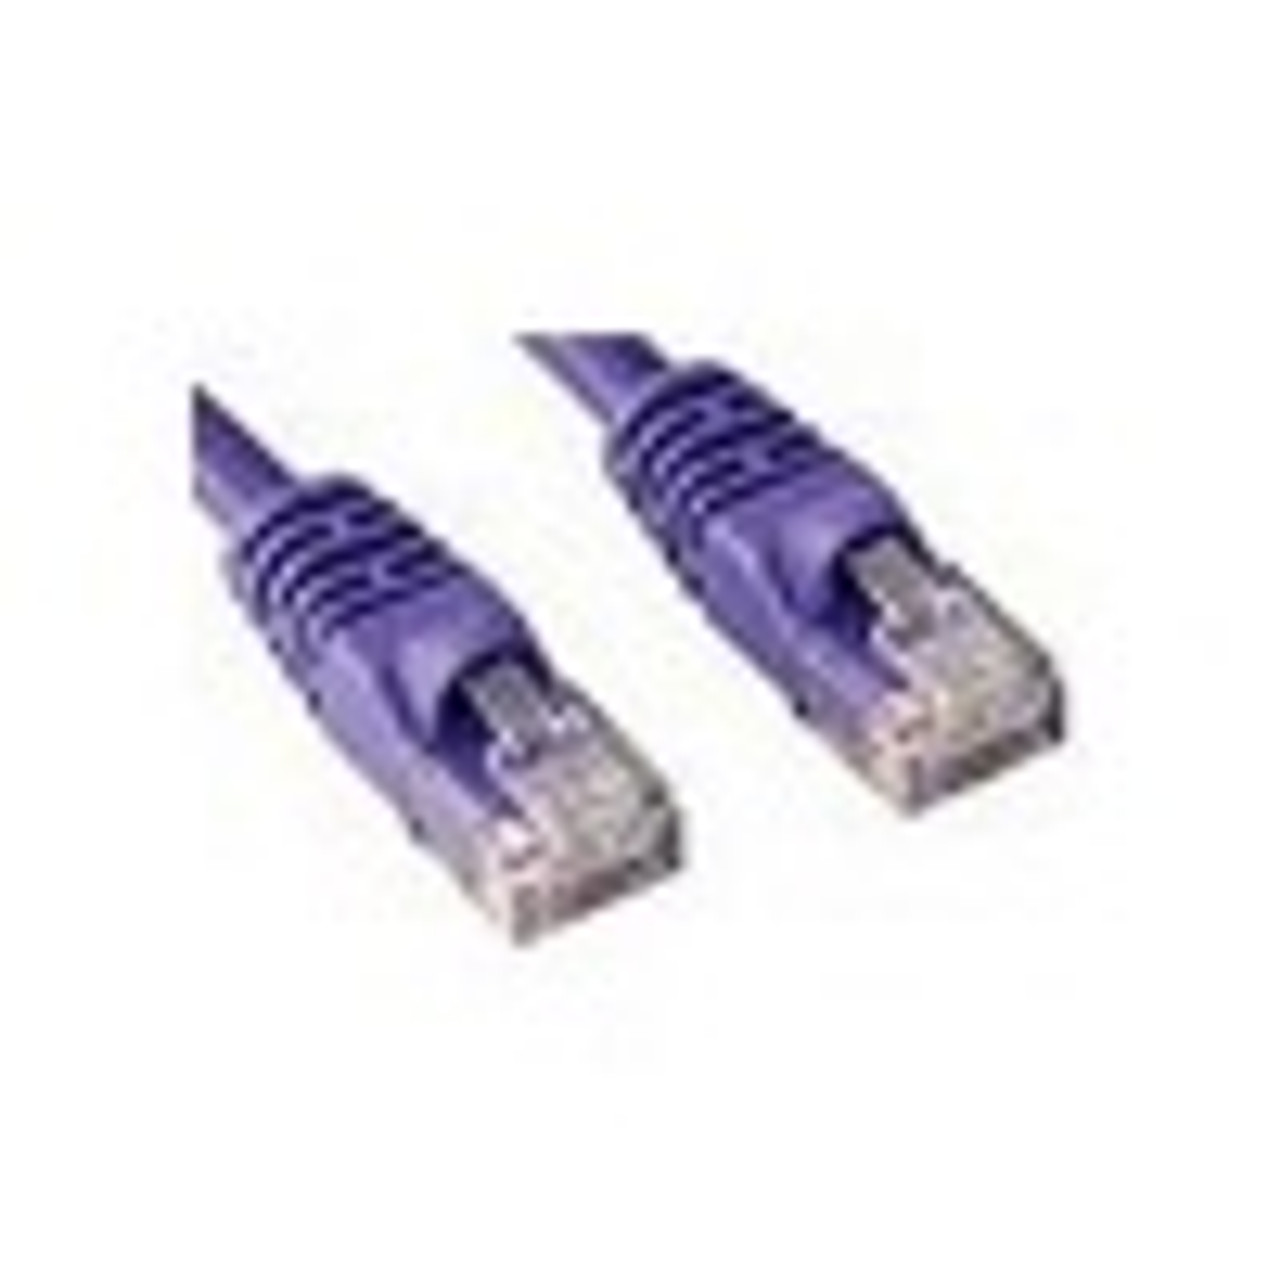 Product image for CAT5e PATCH CORD 10M PURPLE Network Cable 73050   CX Computer Superstore